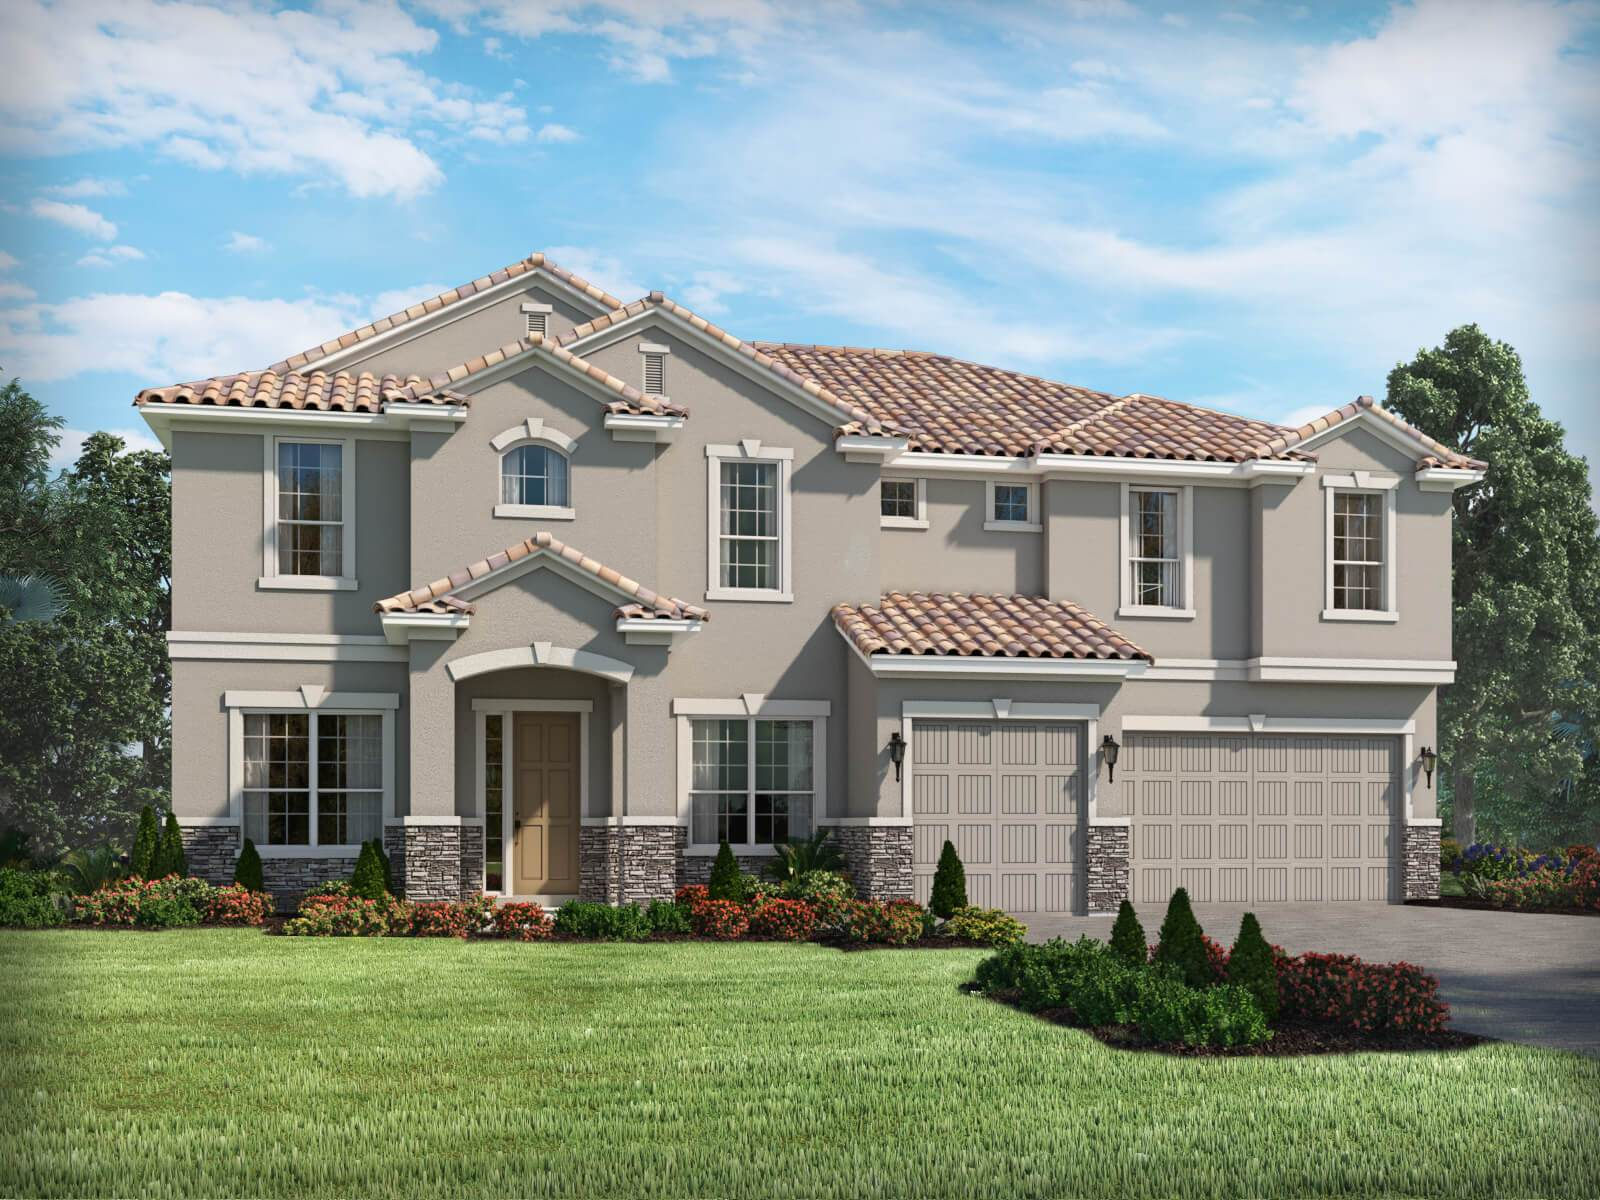 Savanna at Lakewood Ranch - Signature Series in Lakewood Ranch, FL, now available for showing by Anthony Santiago